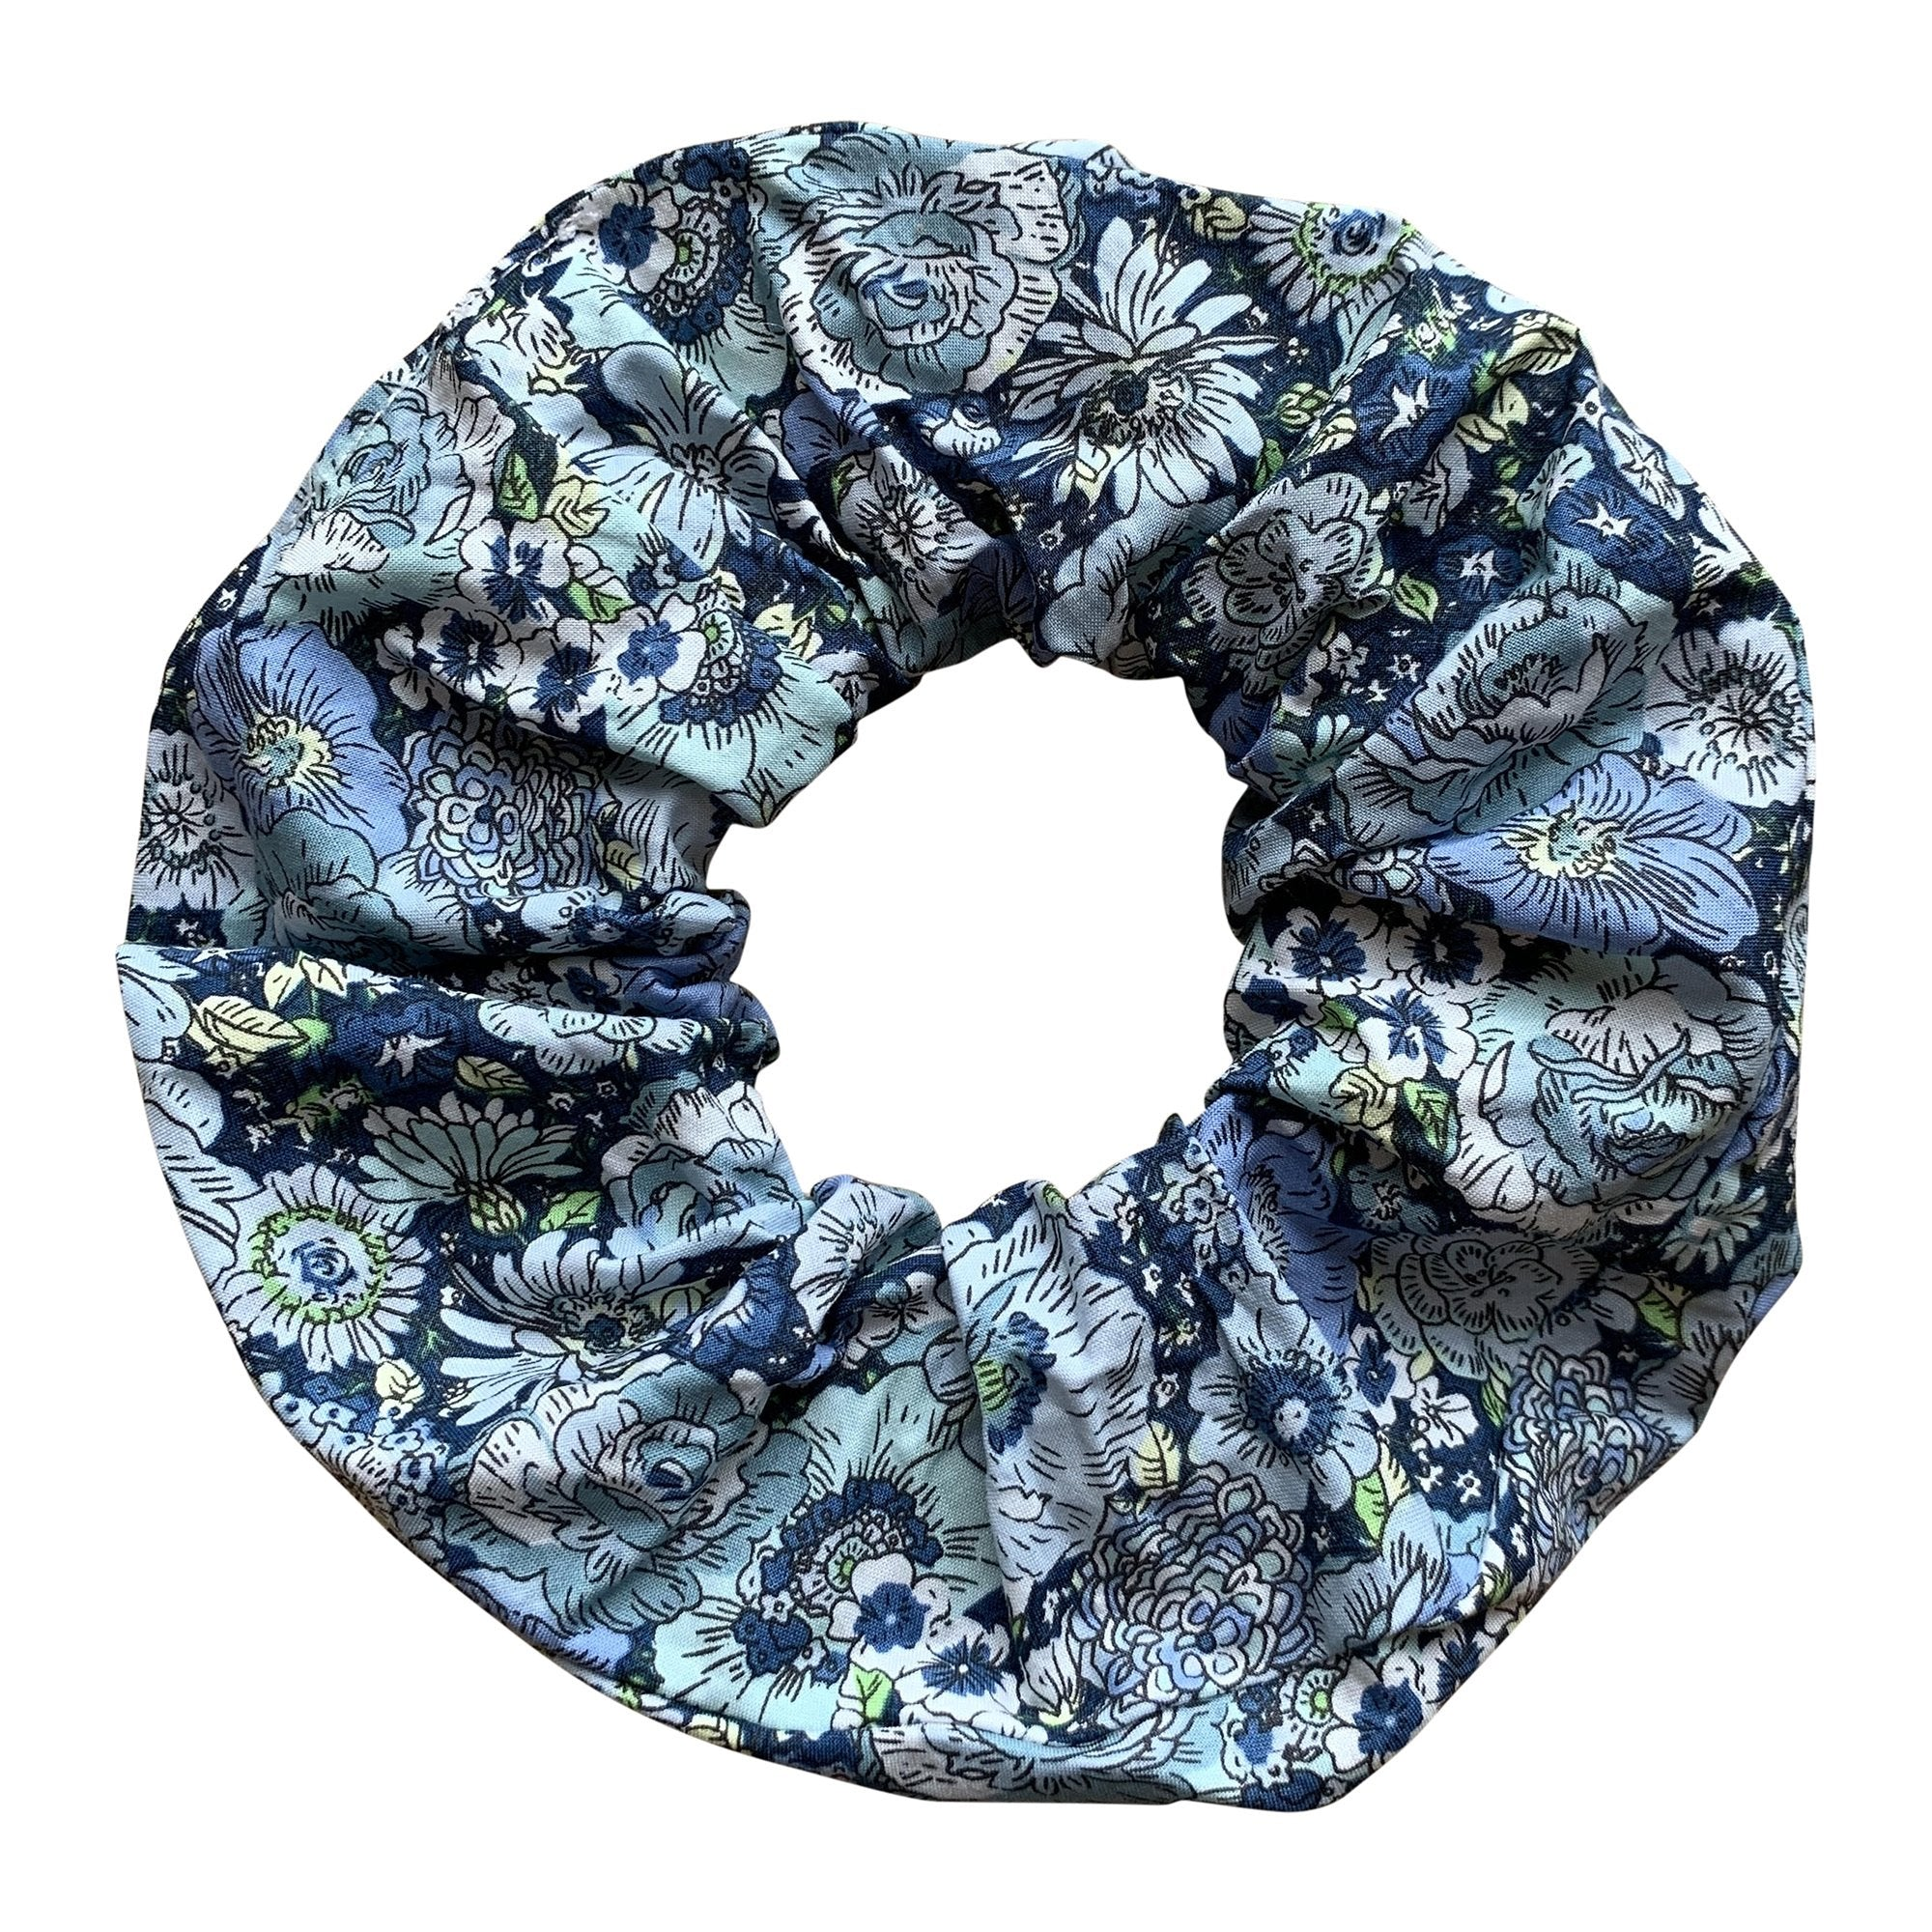 HAIR SCRUNCHIE IN NAVY LIBERTY PRINT